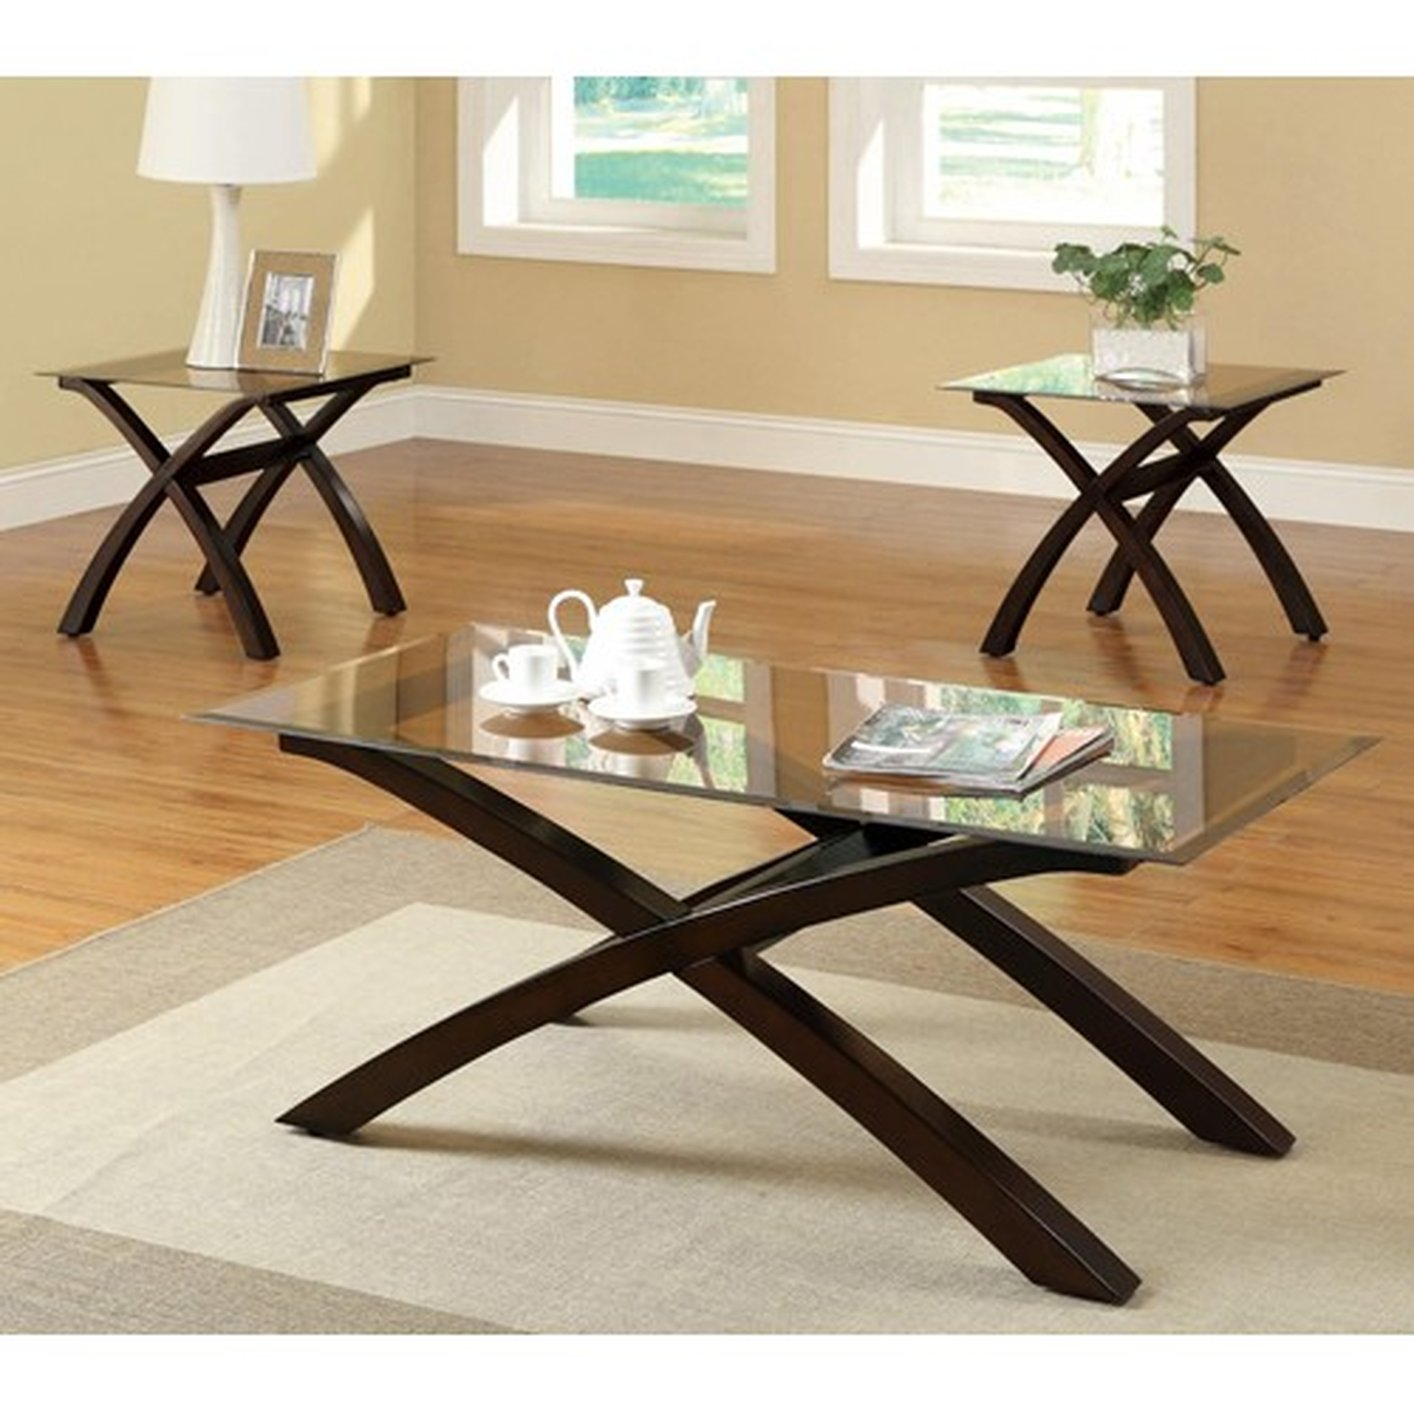 Brown Glass Coffee Table Set - Coaster 701610 Brown Glass Coffee Table Set - Steal-A-Sofa